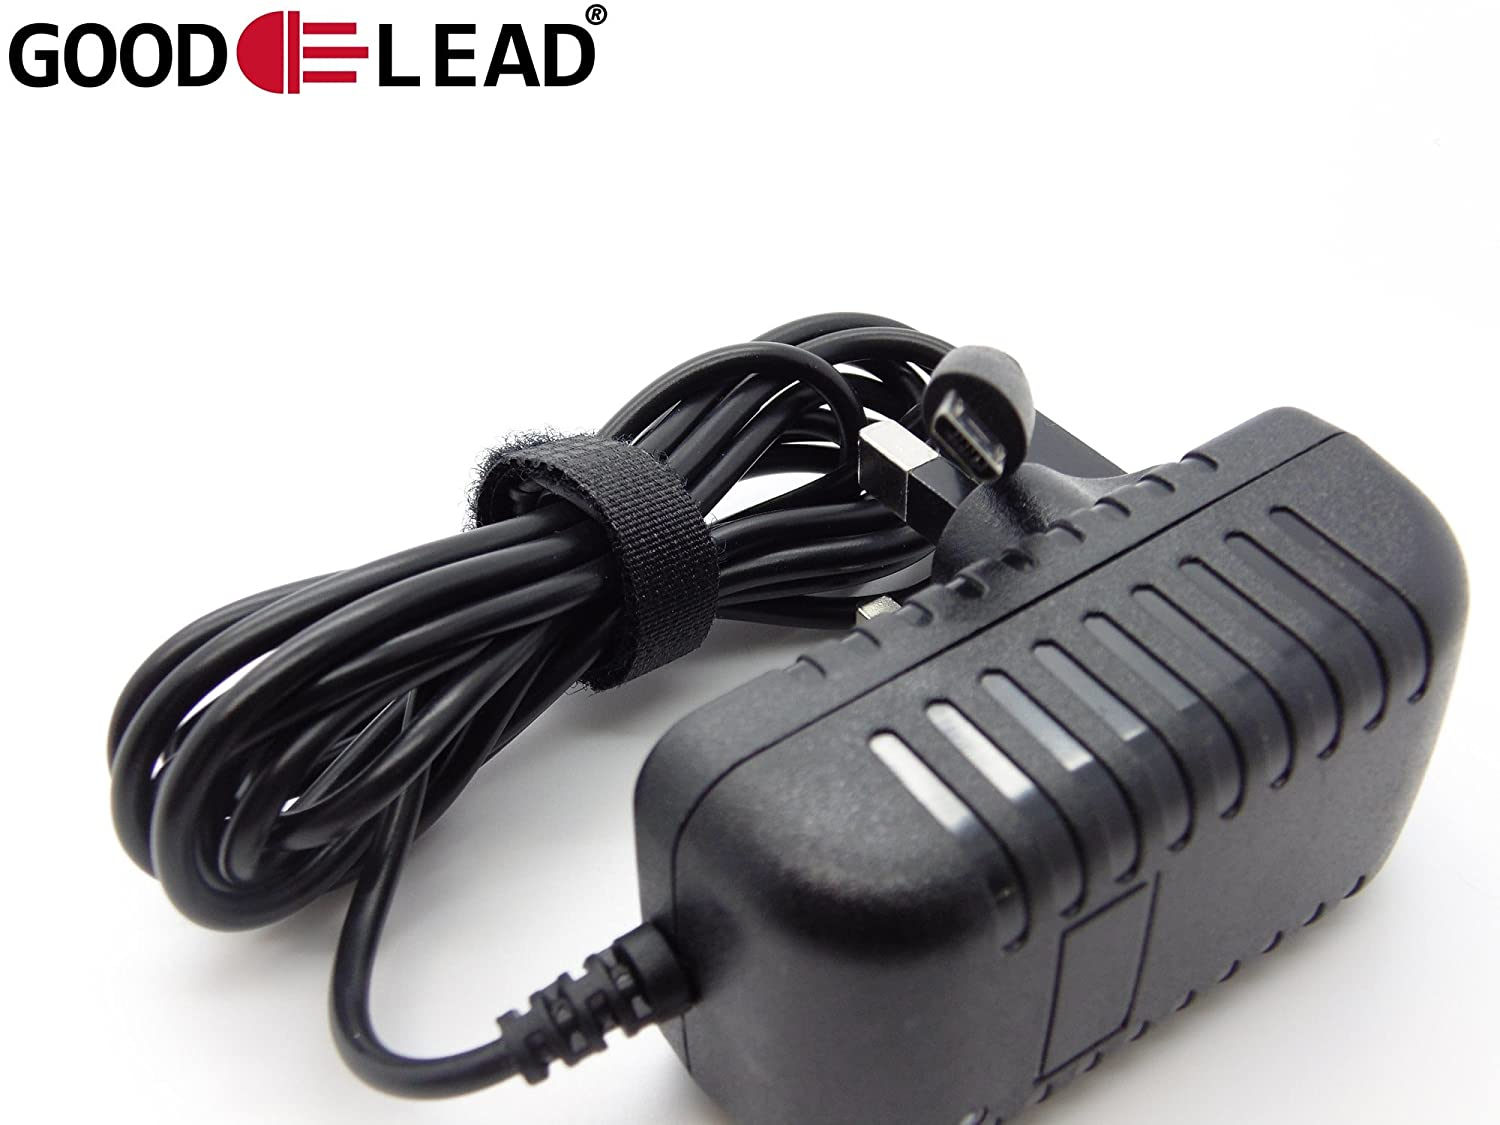 GOOD LEAD 5V 2A Adapter Power Supply Charger For Anker Power Bank NEW UK SELLER